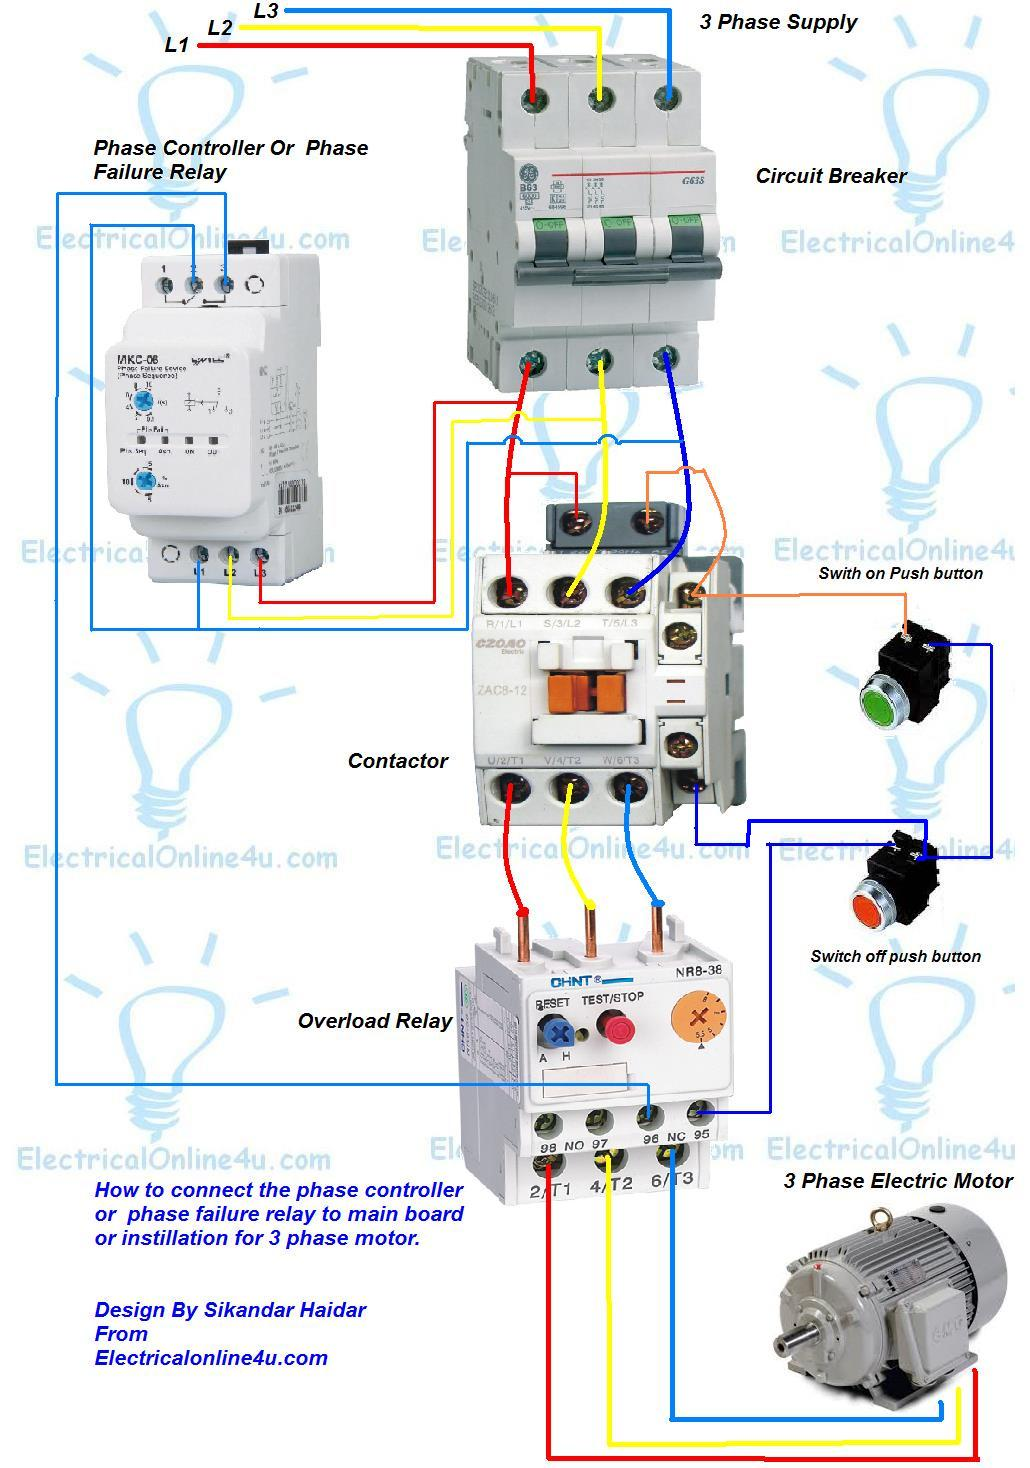 Phase%2Bfailure%2Brelay%2B %2Bphase%2Bcontroller%2Binstilaion%2Bin%2B3%2Bphase%2BMain%2Bboard%2Bor%2Bfor%2B3%2Bphase%2Bmotor phase controller wiring phase failure relay diagram electrical relay wiring diagram at virtualis.co